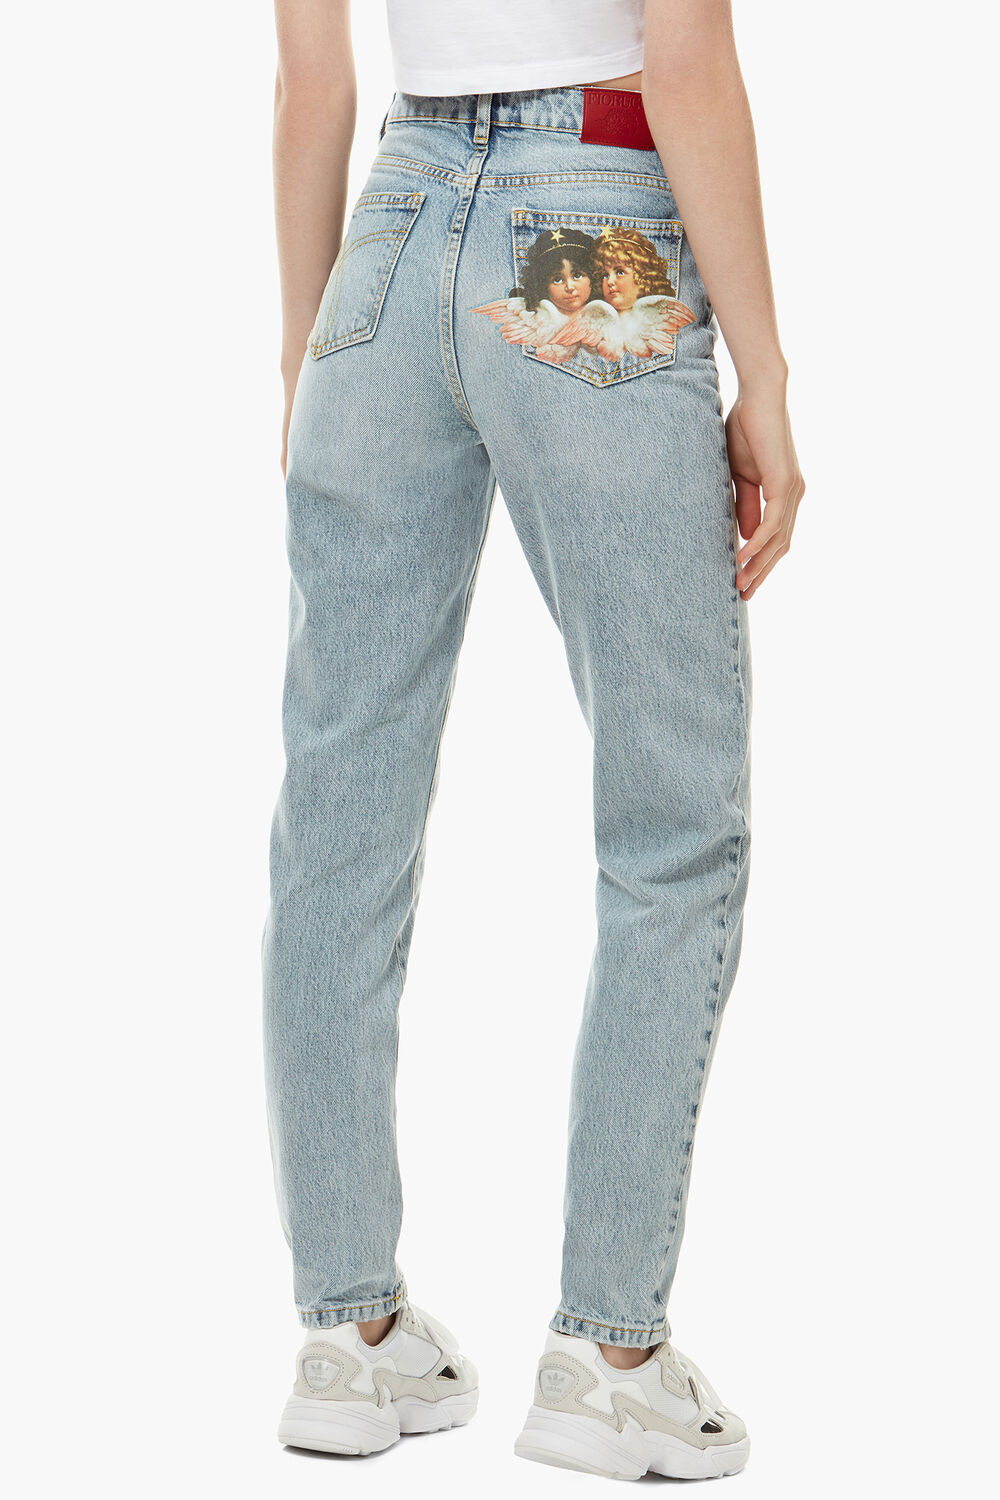 Tara Patch Tapered Jean